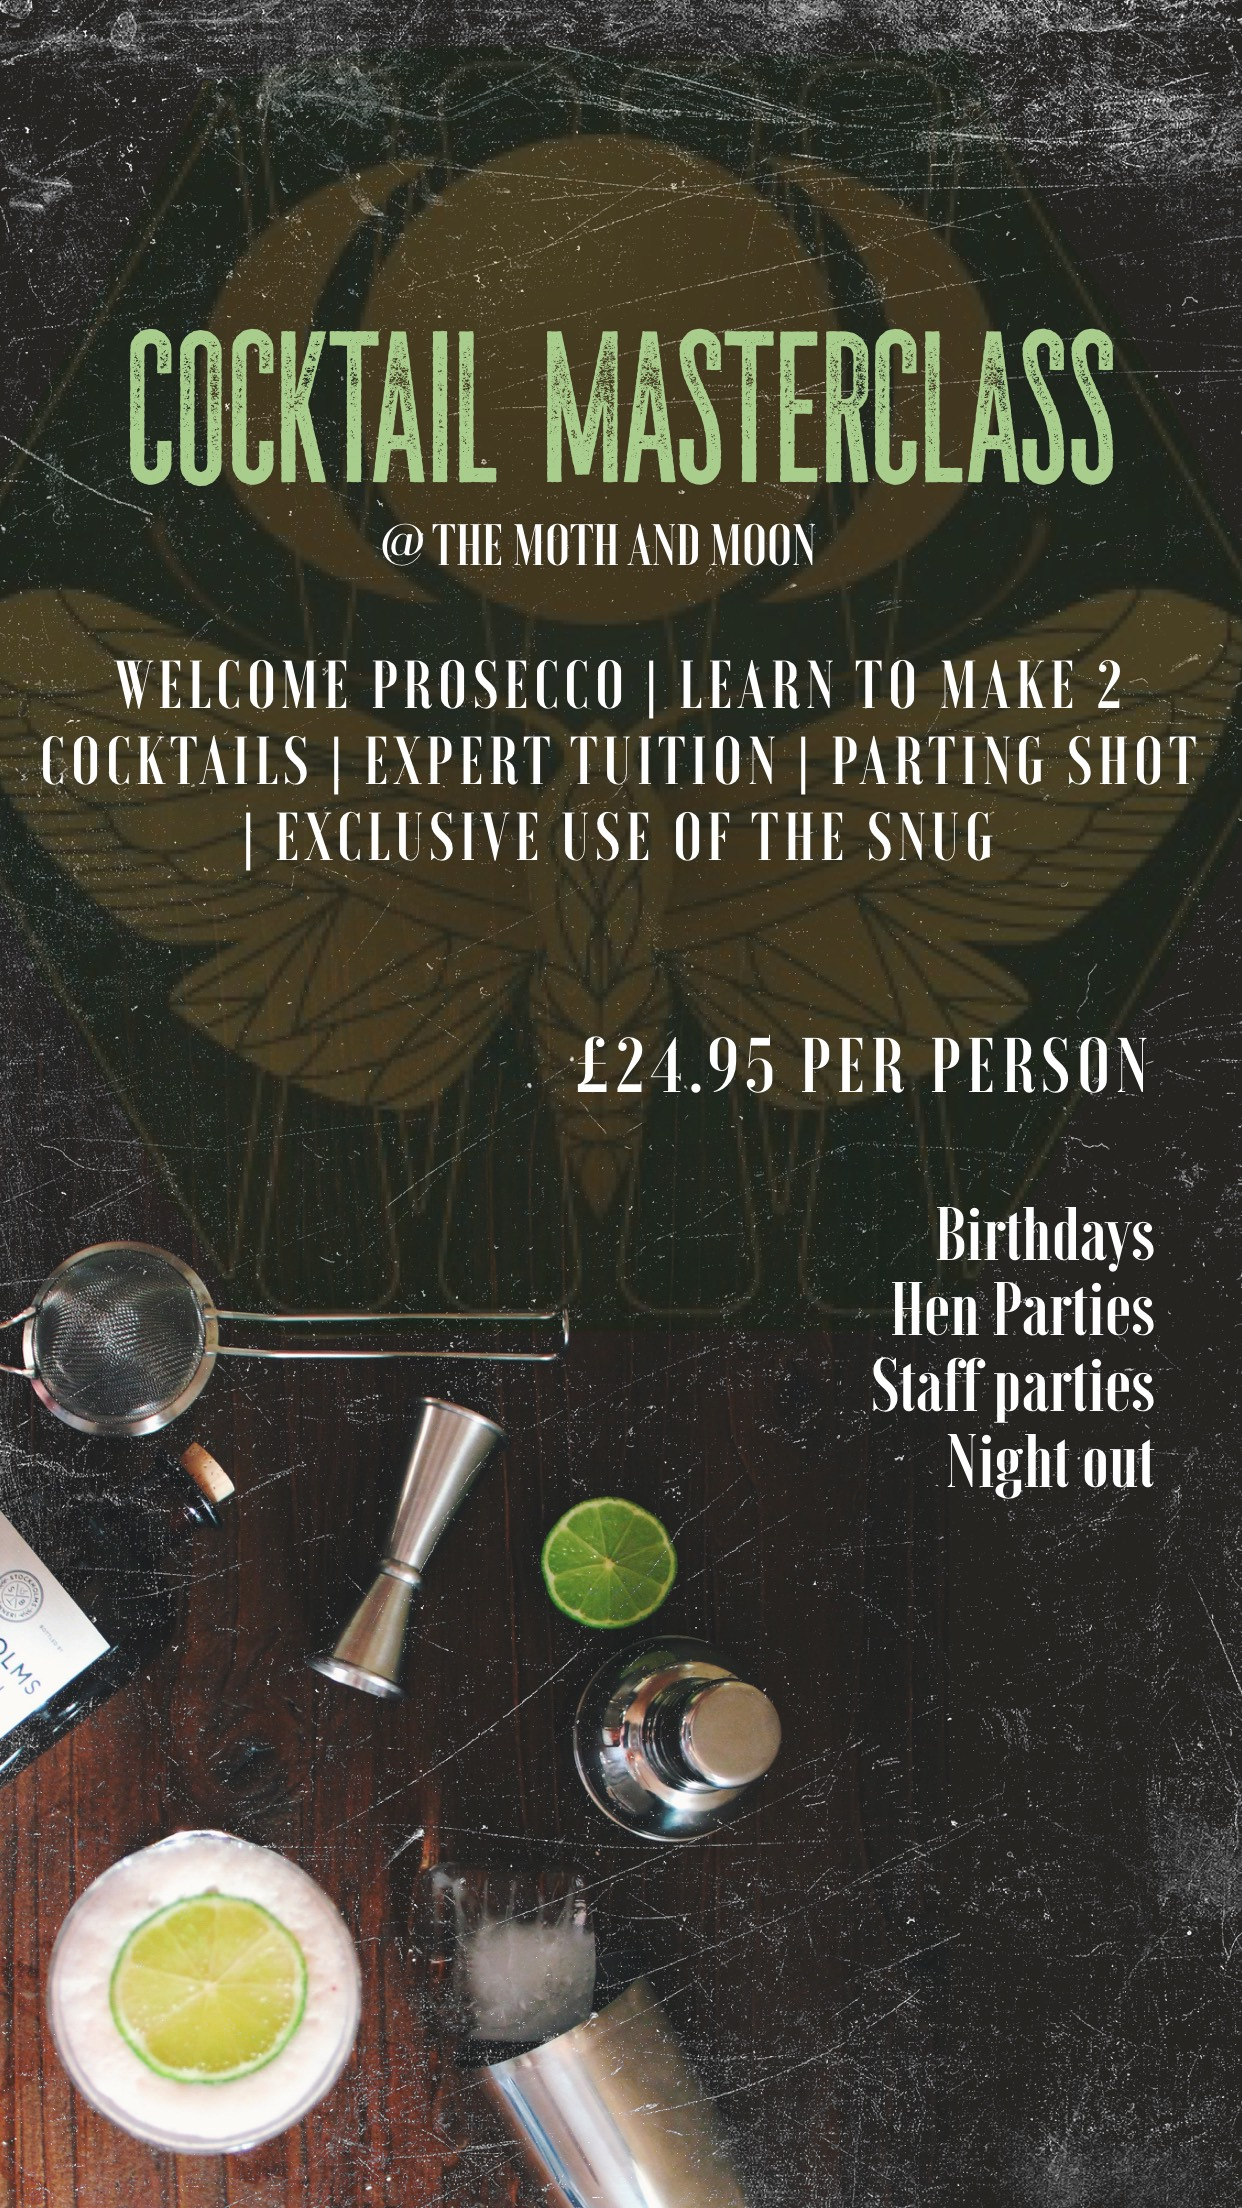 cocktail master class flyer for moth and the moon in falmouth in cornwall